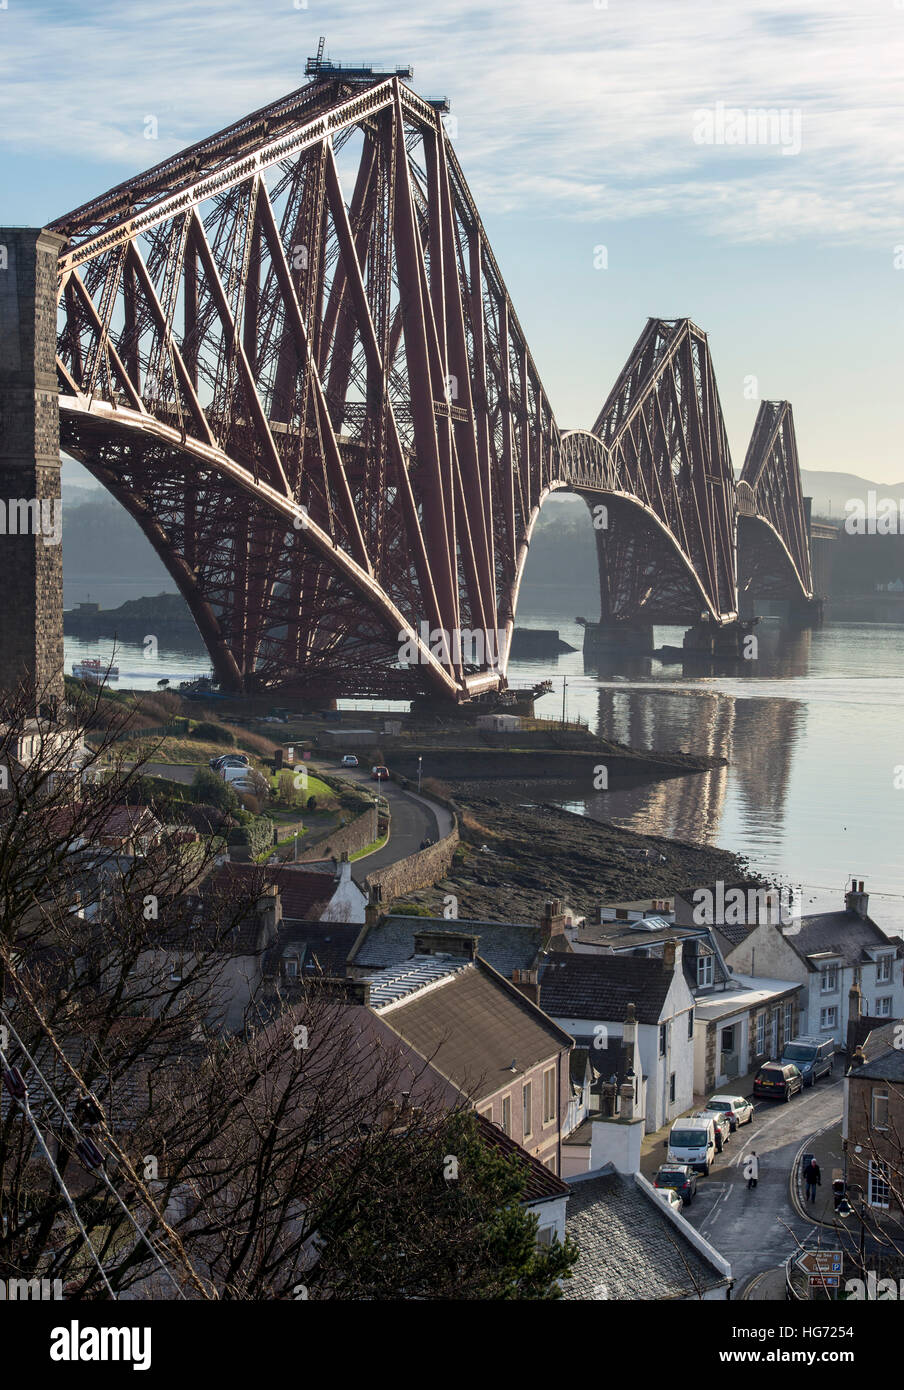 The Forth Rail Bridge viewed from the village of North Queensferry looking south over the Firth of Forth. - Stock Image